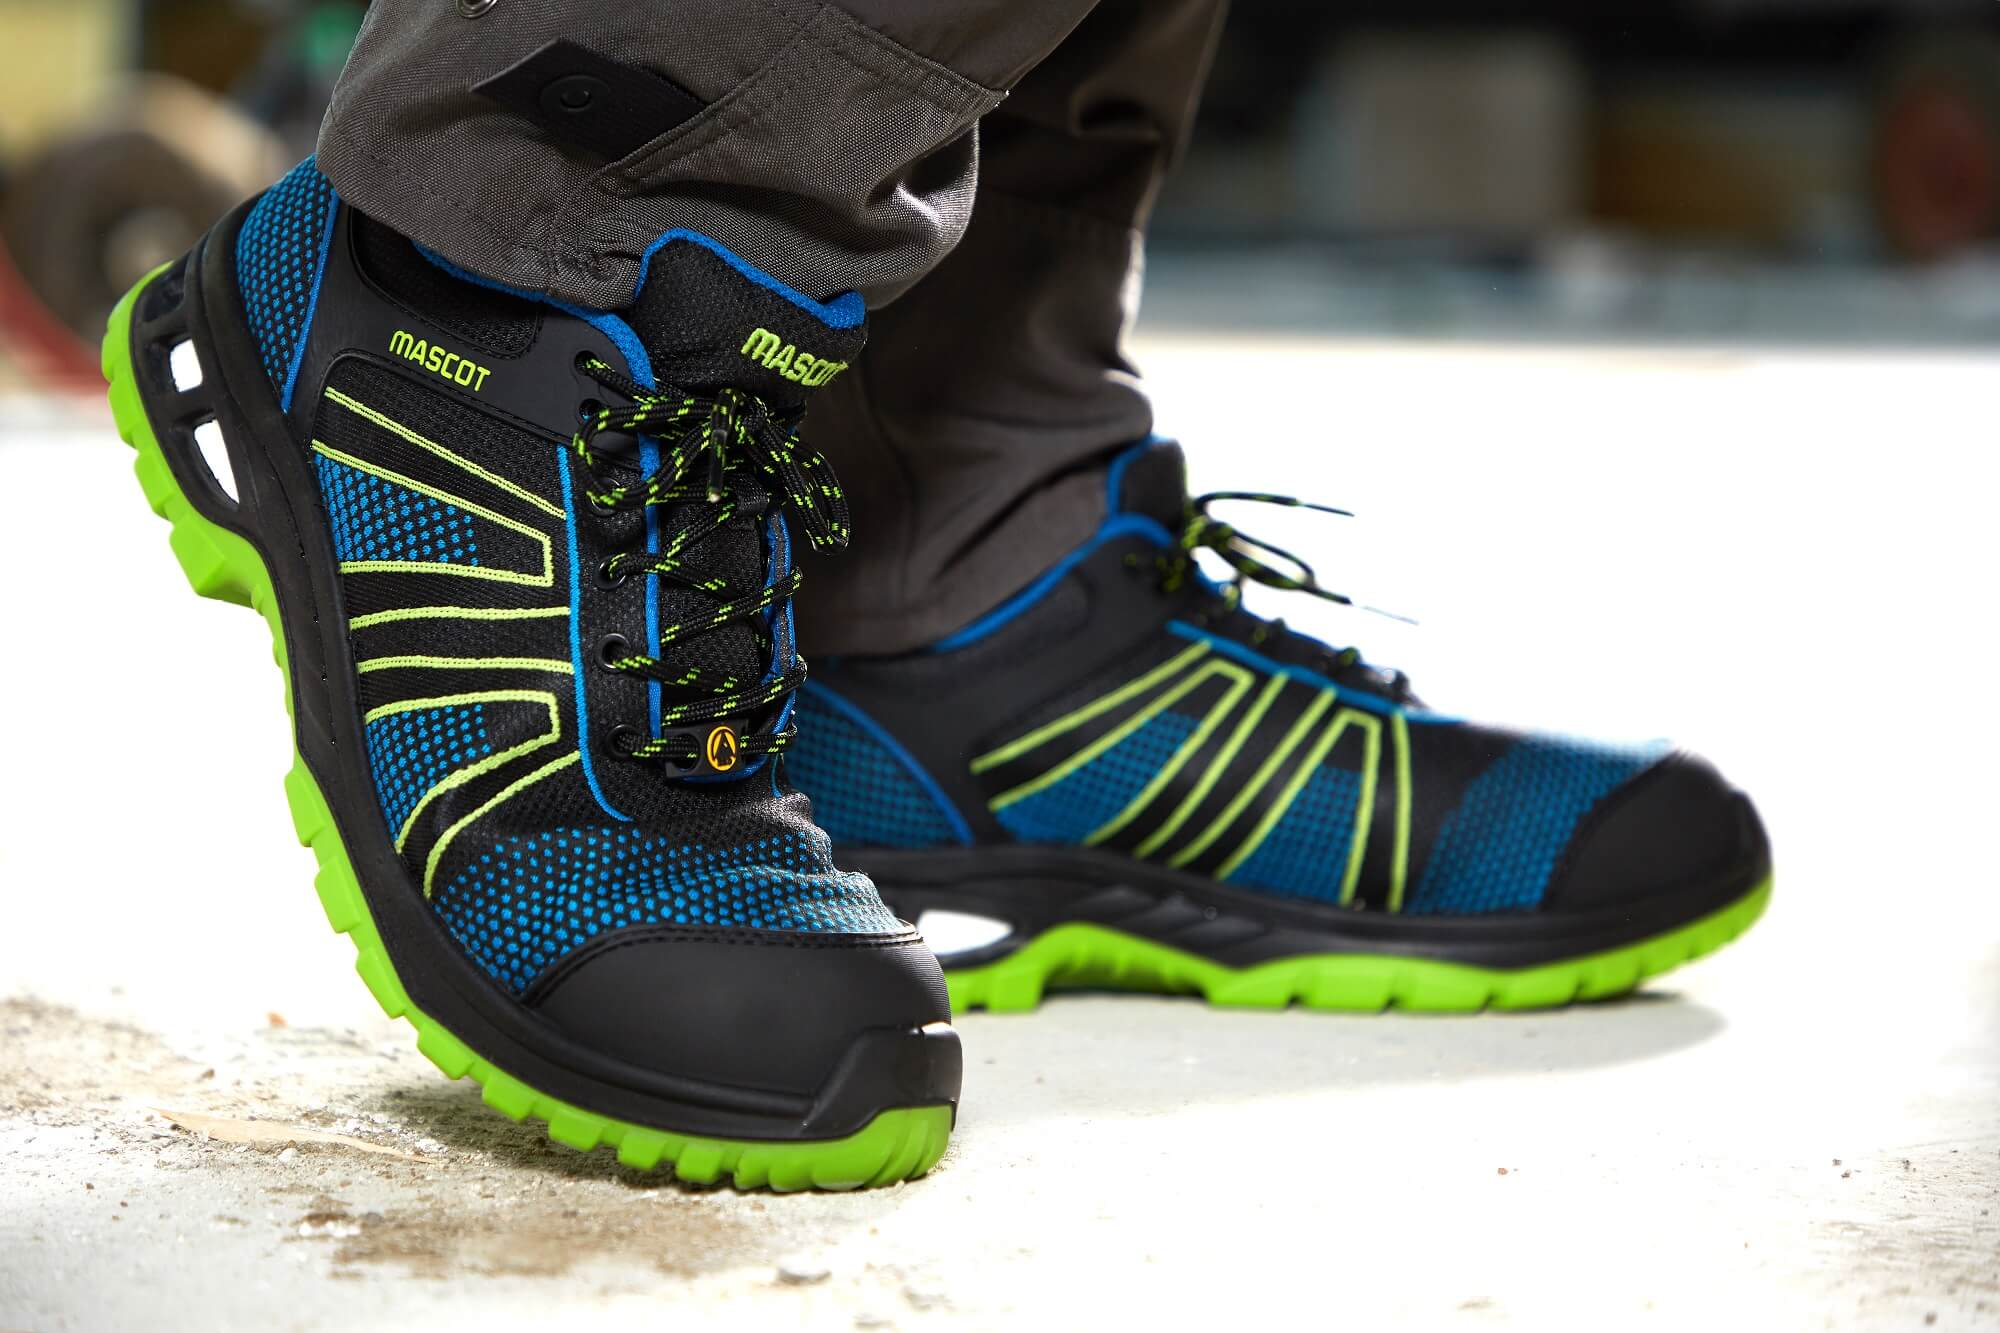 Safety Shoe - MASCOT® FOOTWEAR ENERGY - Environment